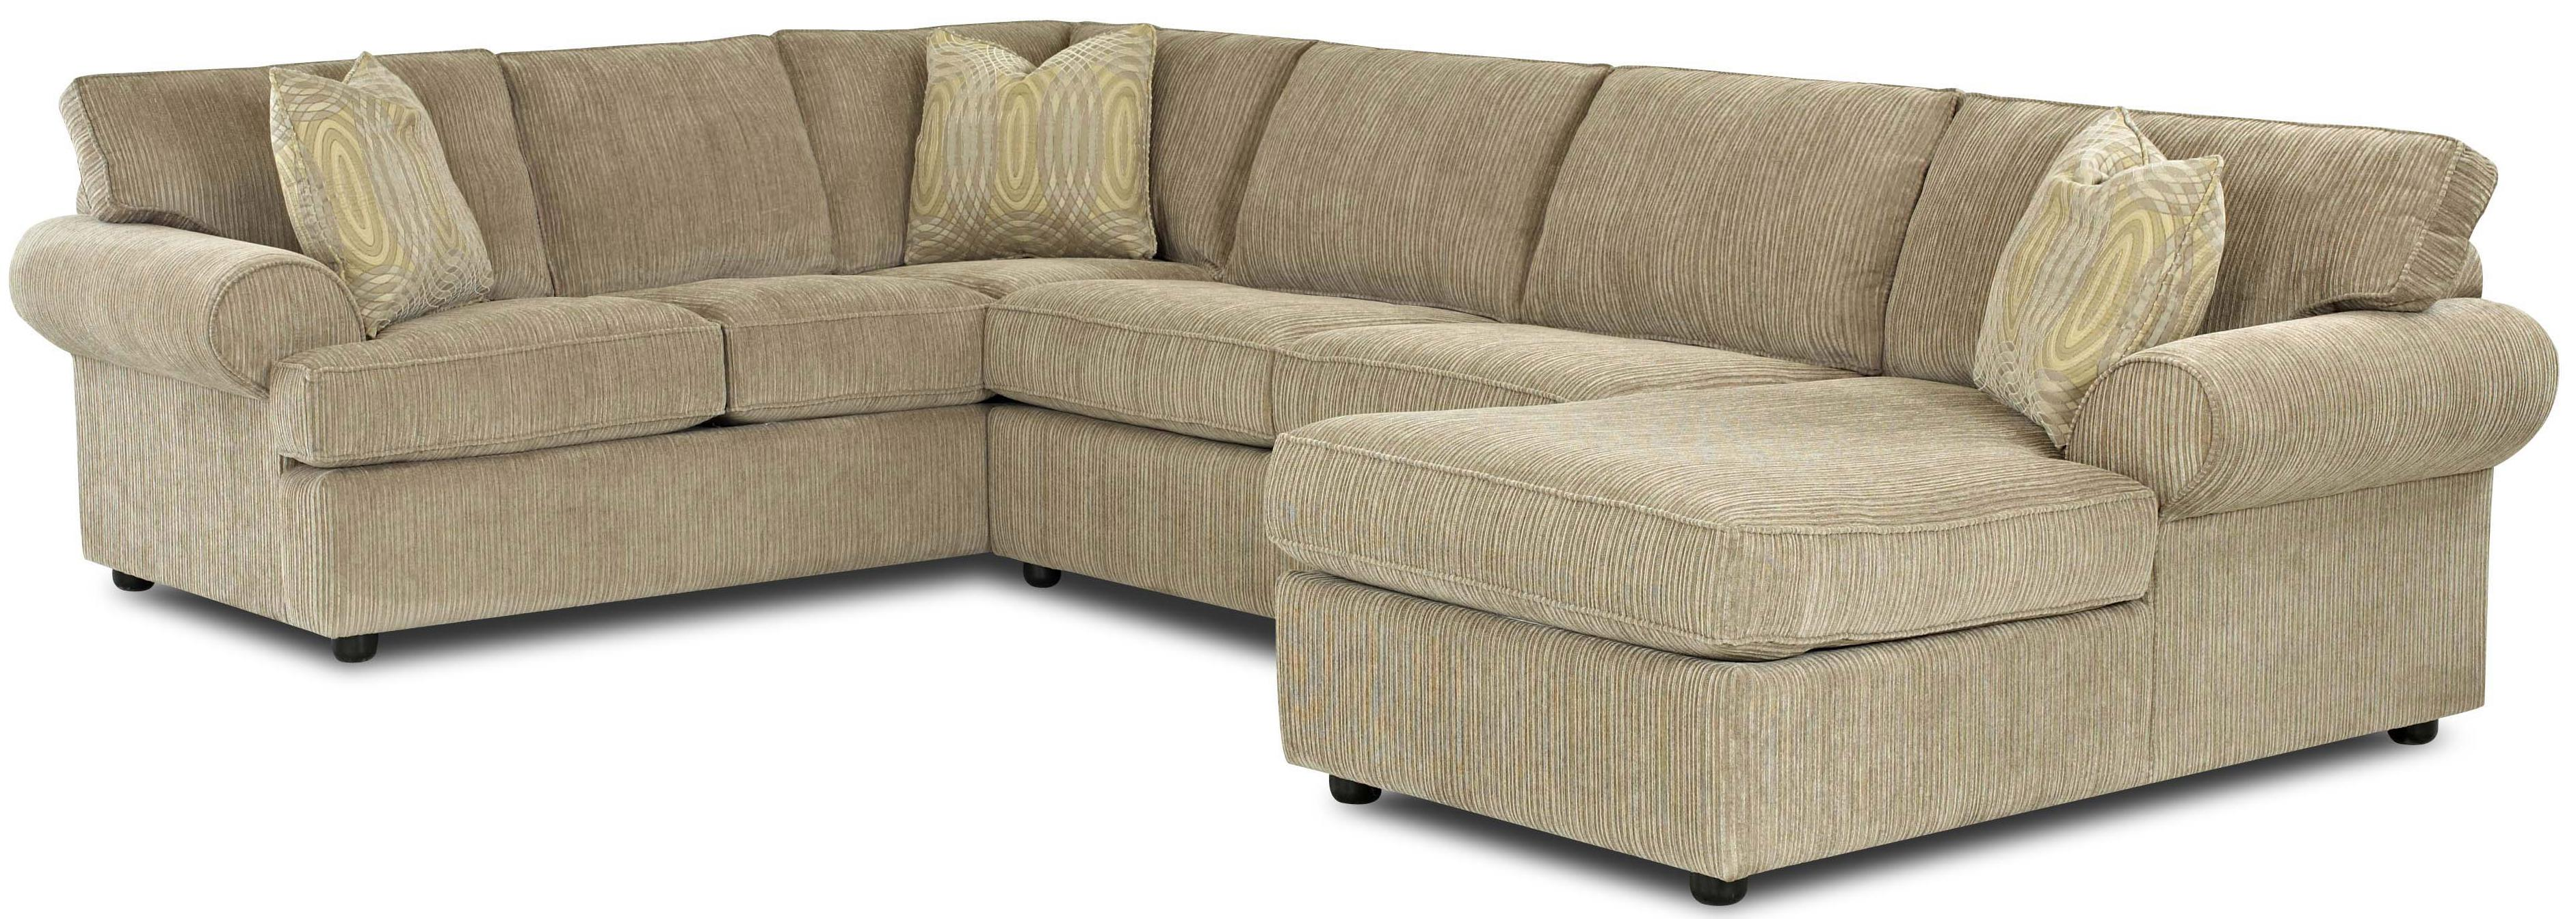 Transitional Sectional Sofa with Rolled Arms and Right Chaise and